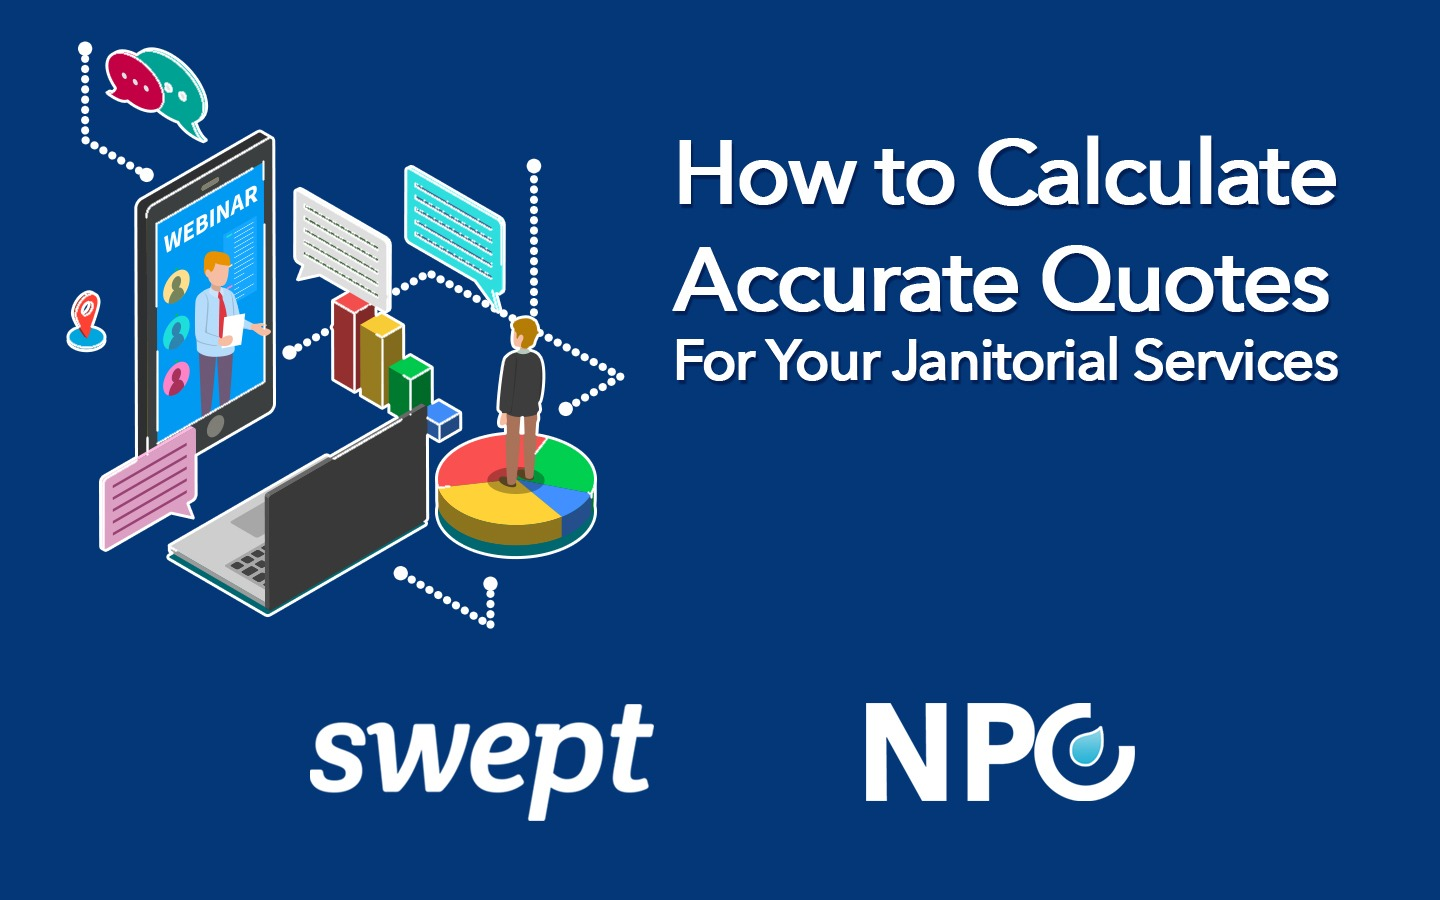 How to Calculate Accurate Quotes for your Janitorial Services